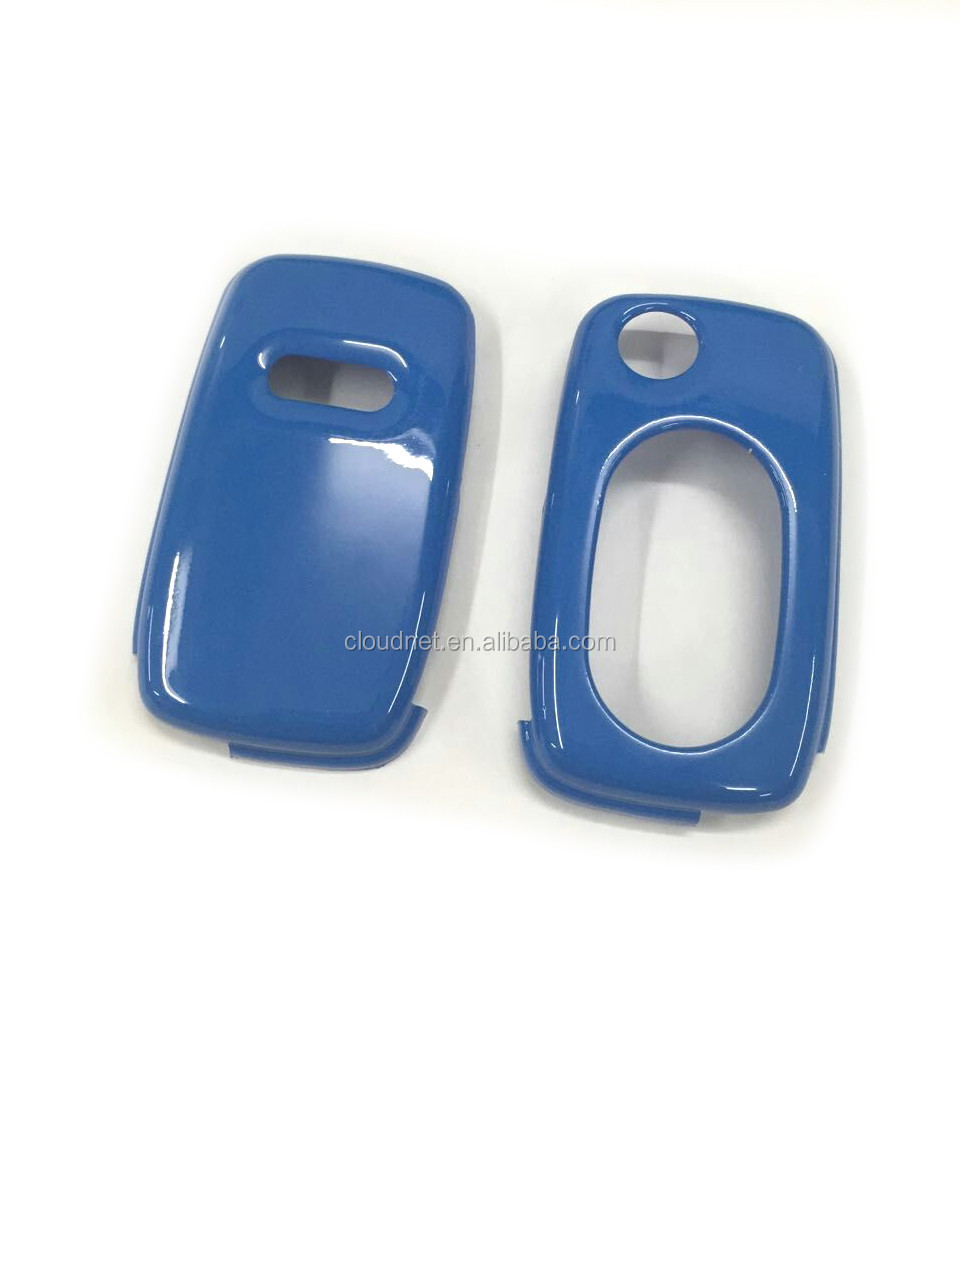 Gloss Blue Plastic Keyless Remote Key Fob Flip Key Protection Case Cover For Audi A3 8L A4 B5 B6 TT MK1 A6 C5